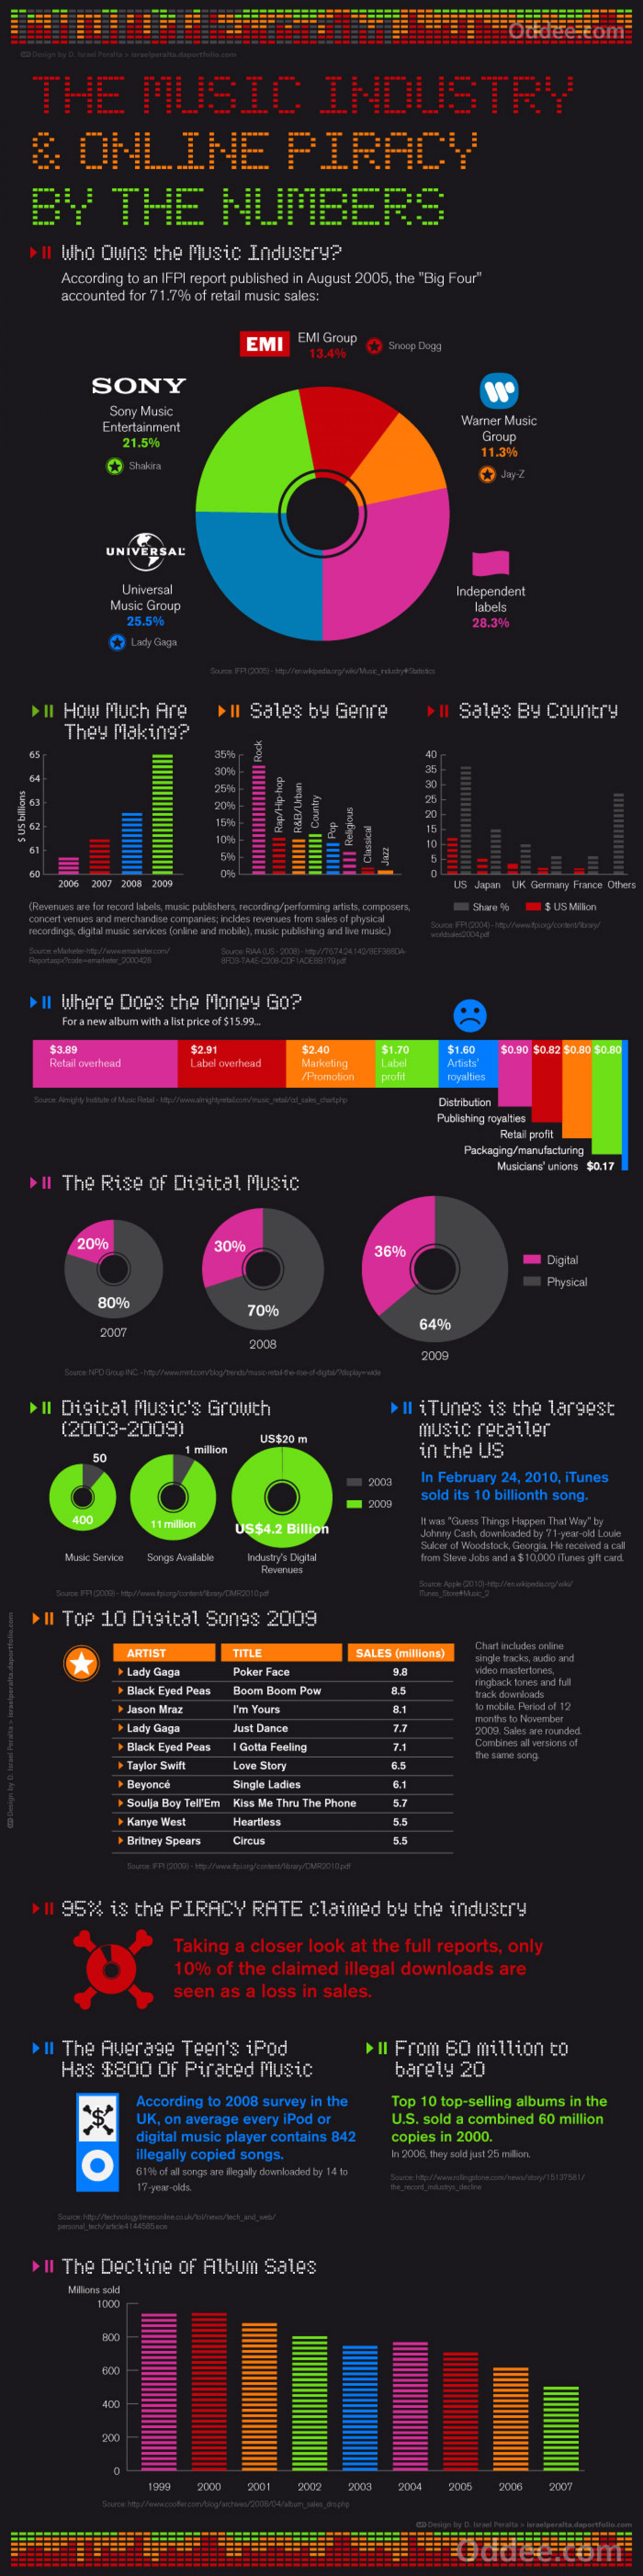 The Music Industry and Online Piracy by The numbers Infographic